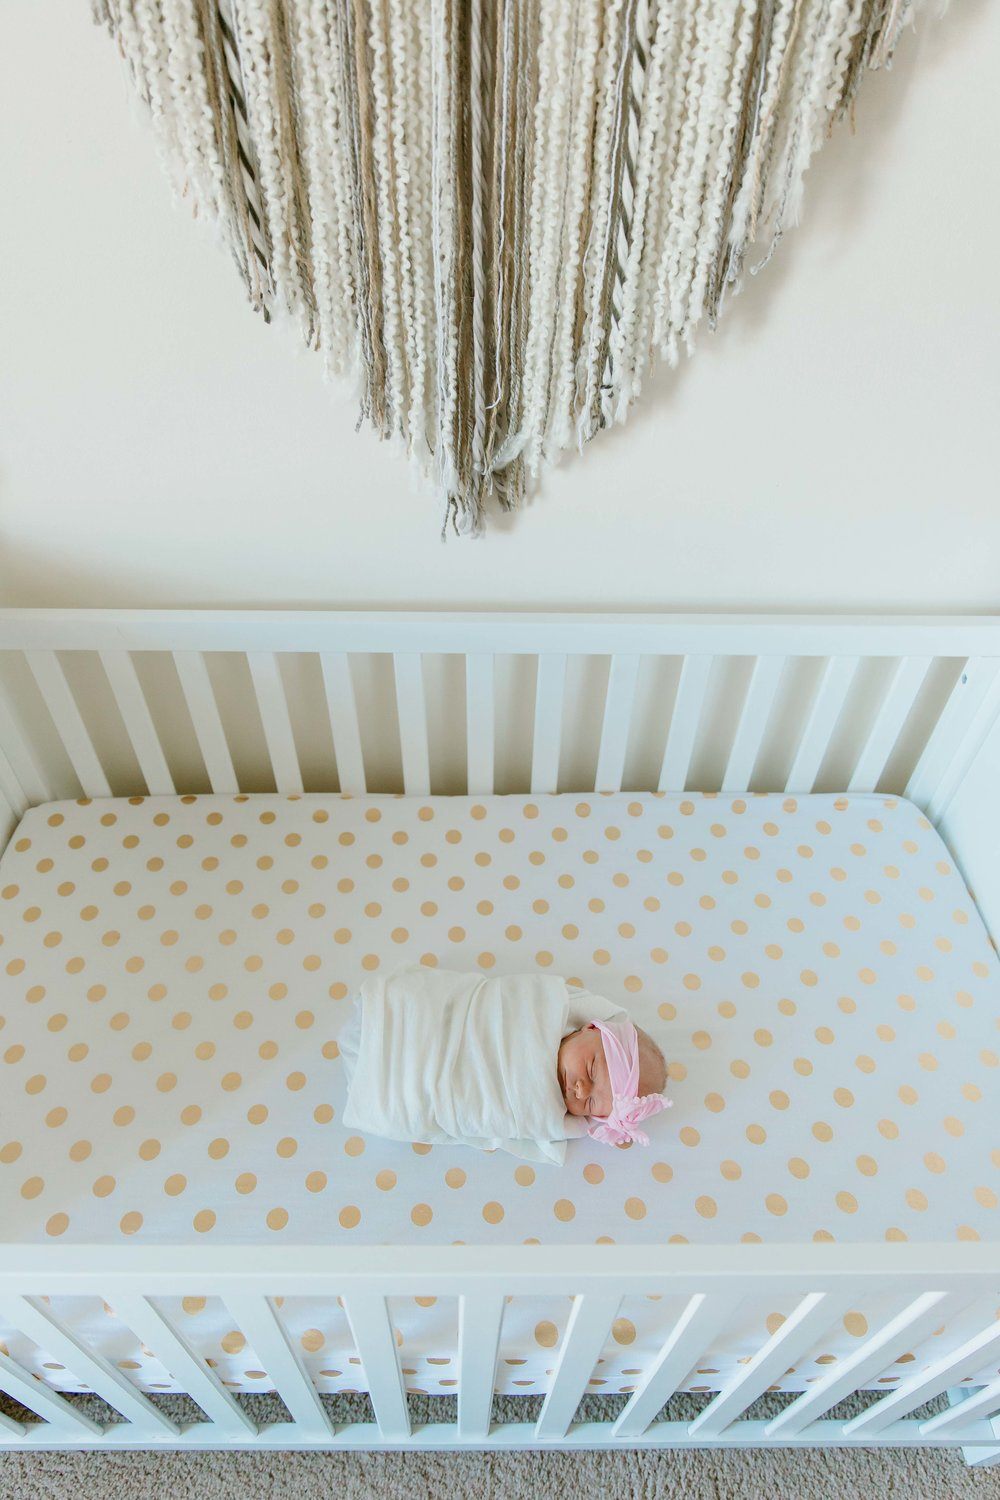 Lauren_gripka_photography_lifestyle_newborn_session_basehor_kansas-28.jpg